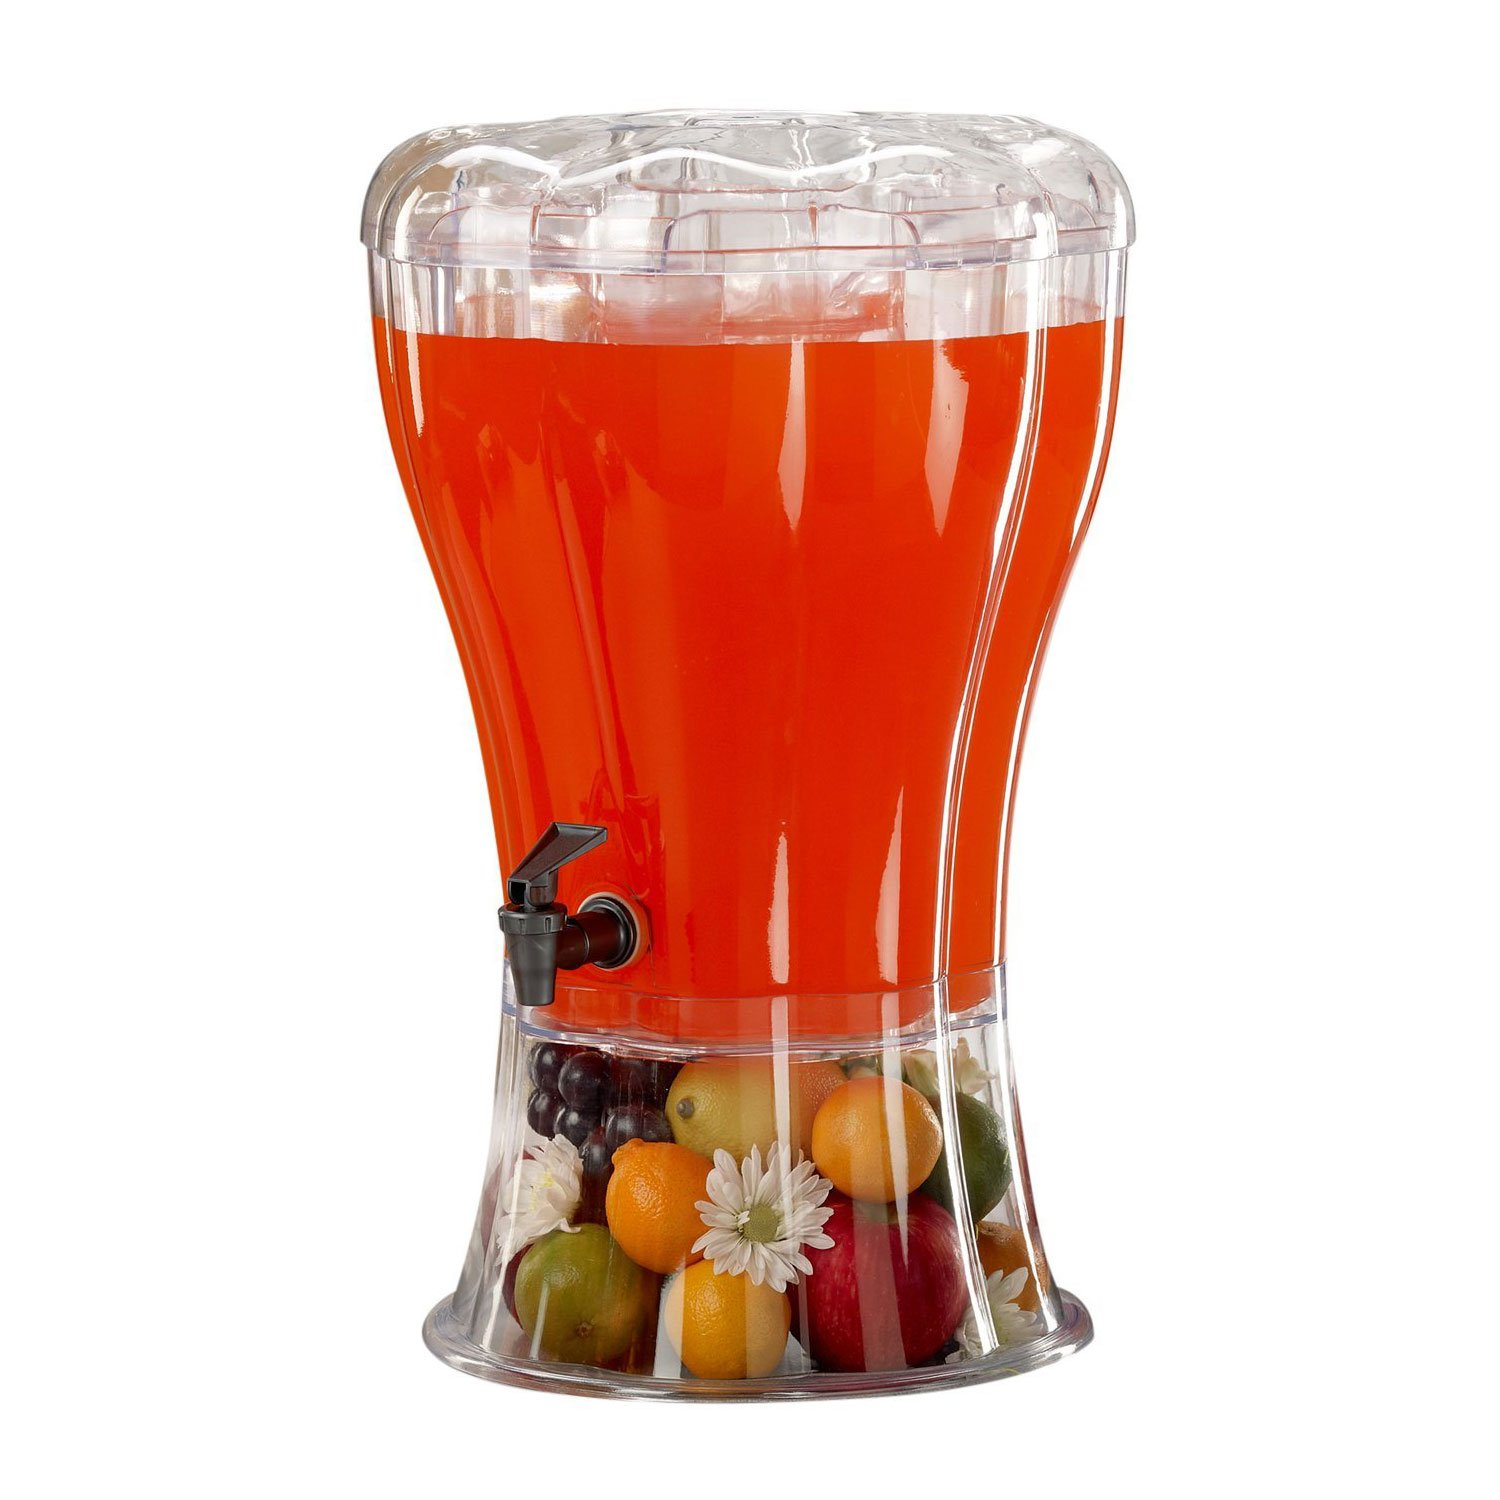 Catering Cold Beverage Drink Dispenser Unbreakable 3.5 Gallon BPA Free with Ice Cone Weddings Parties Events